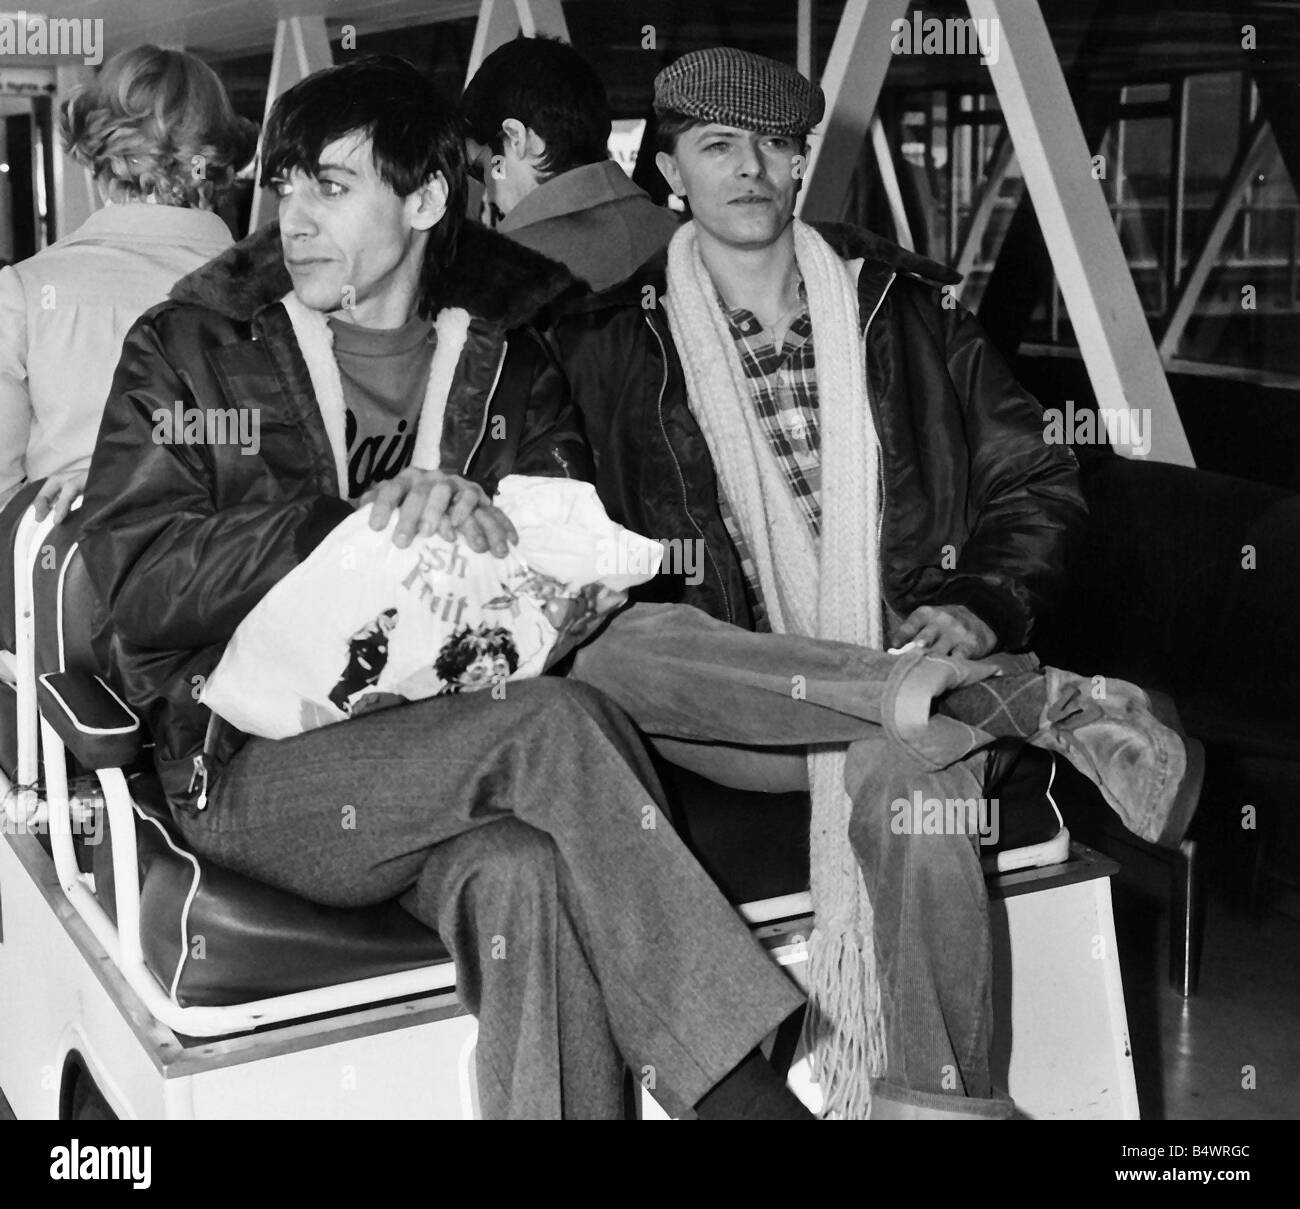 David Bowie and Iggy Pop singers 1977 Stock Photo